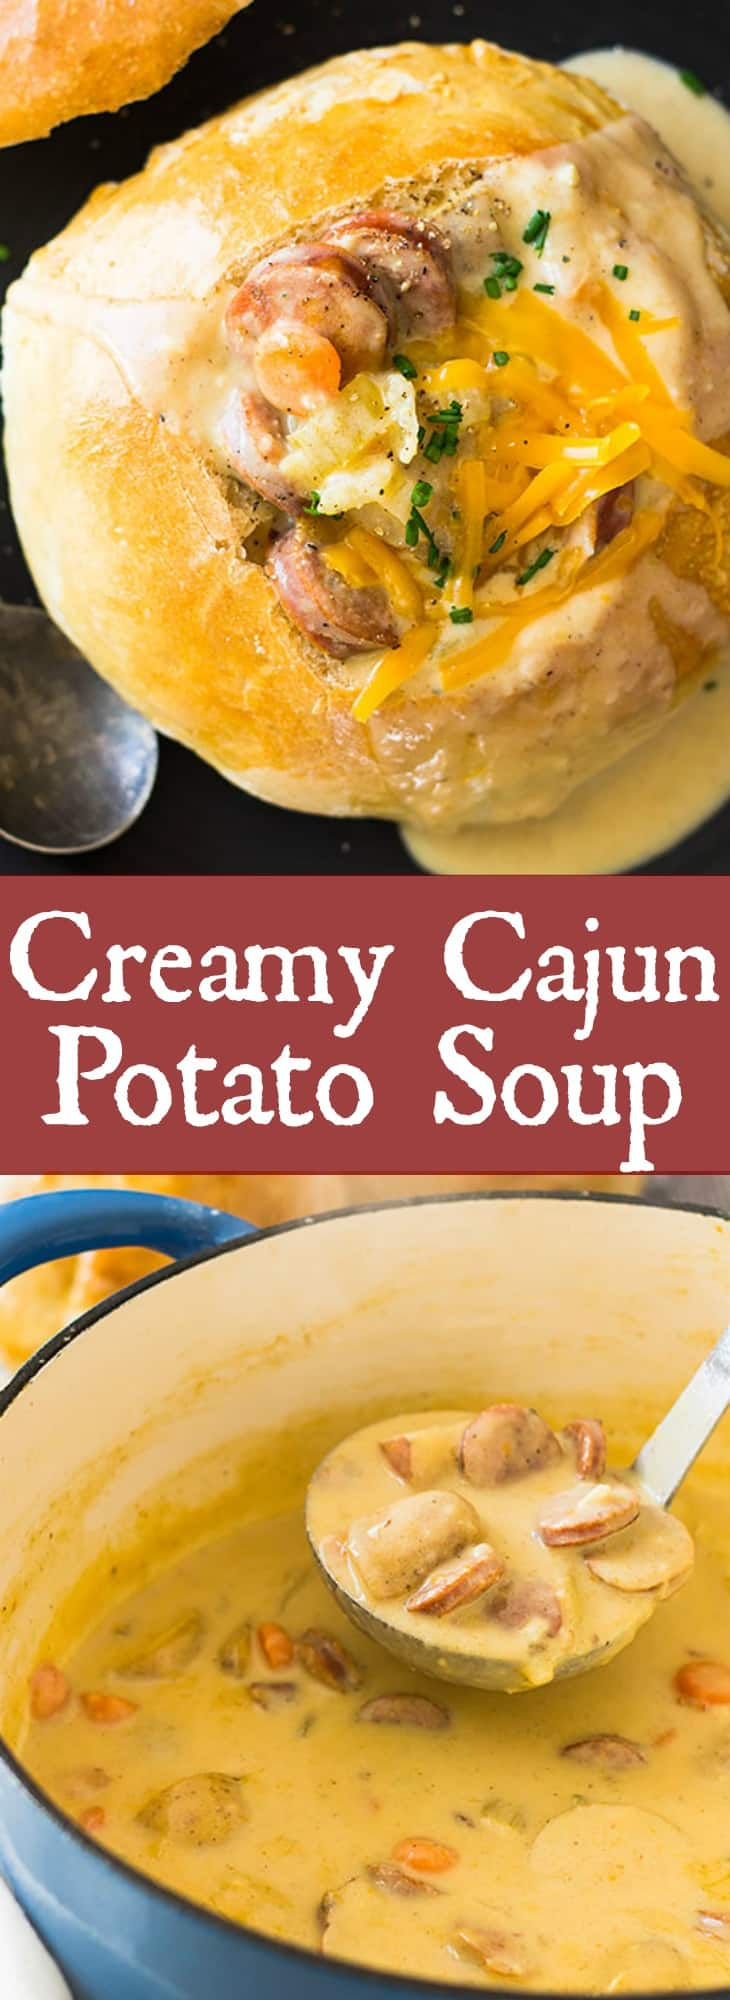 This Creamy Cajun Potato Soup is comfort food kicked up a notch. It's full of flavor, slightly spicy, rich and hearty! | www.countrysidecravings.com